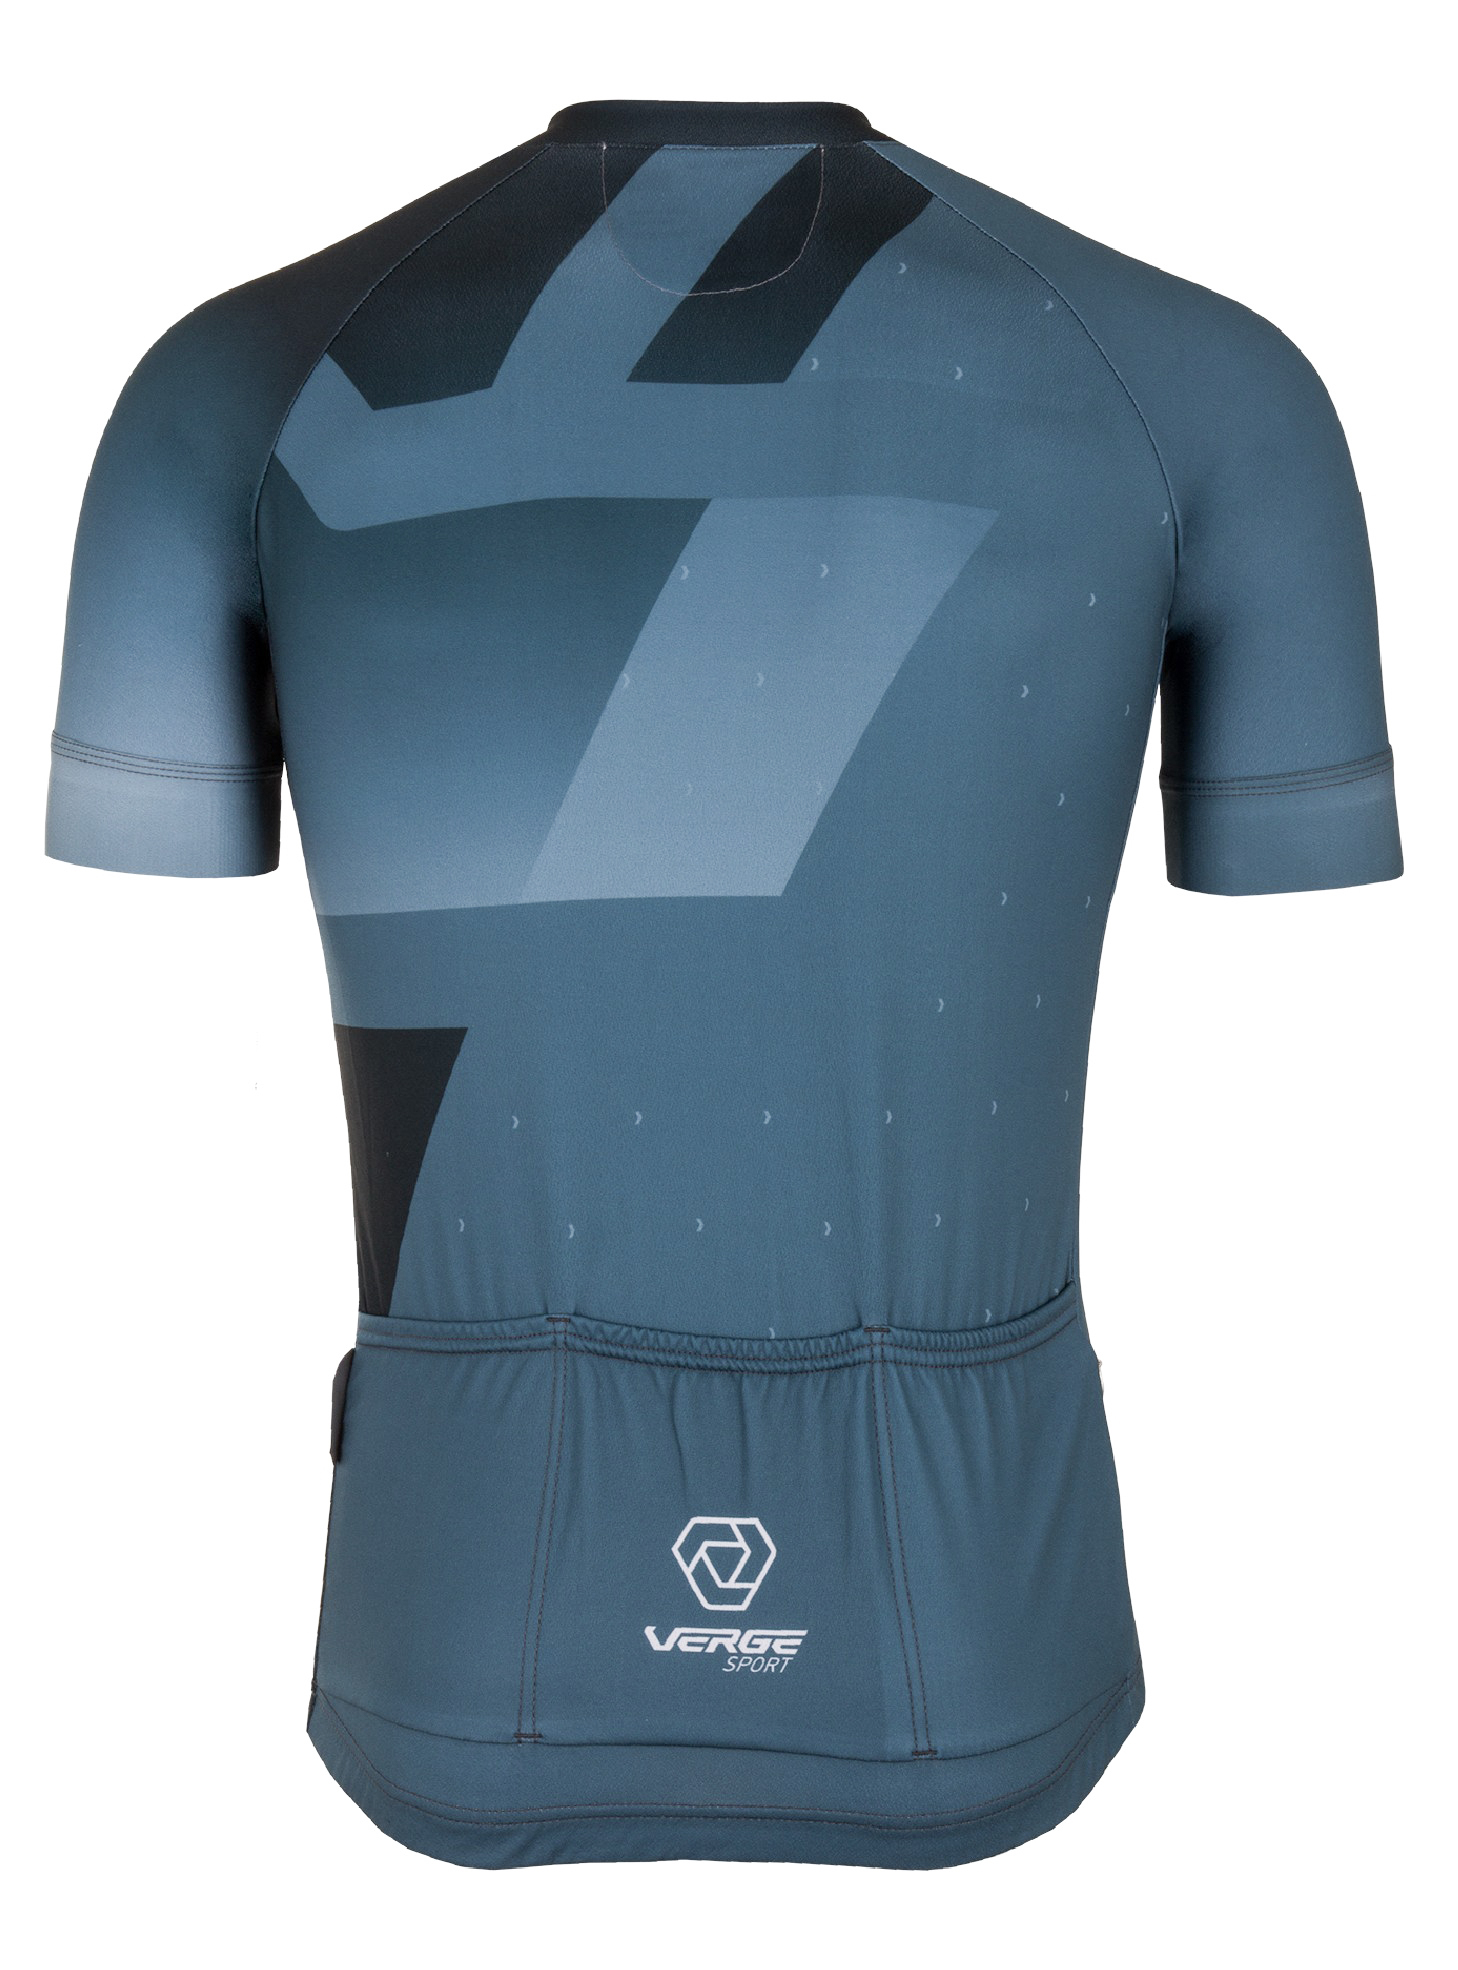 Brand New Verge Core Relaxed Short Sleeve Cycling Jersey Men/'s Medium